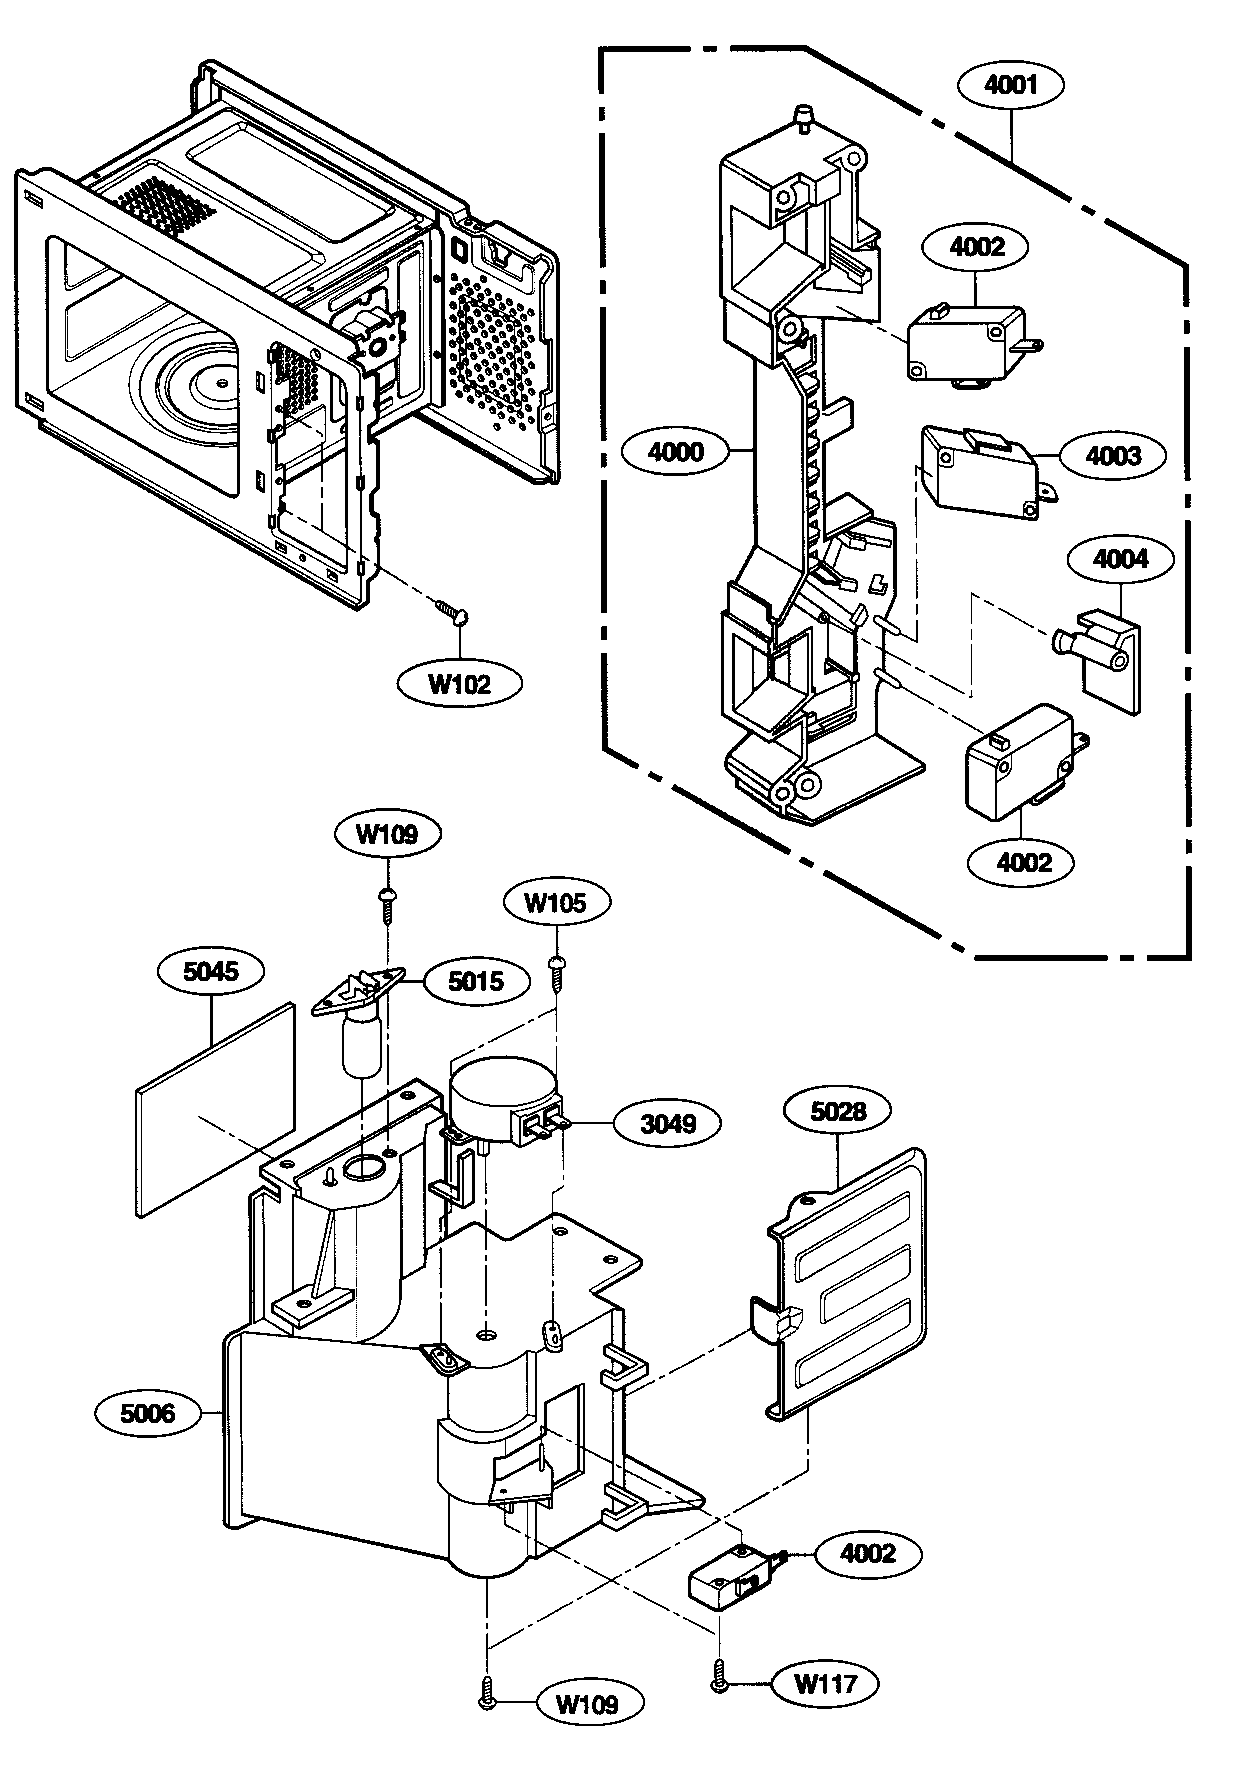 LATCH BOARD PARTS Diagram & Parts List for Model